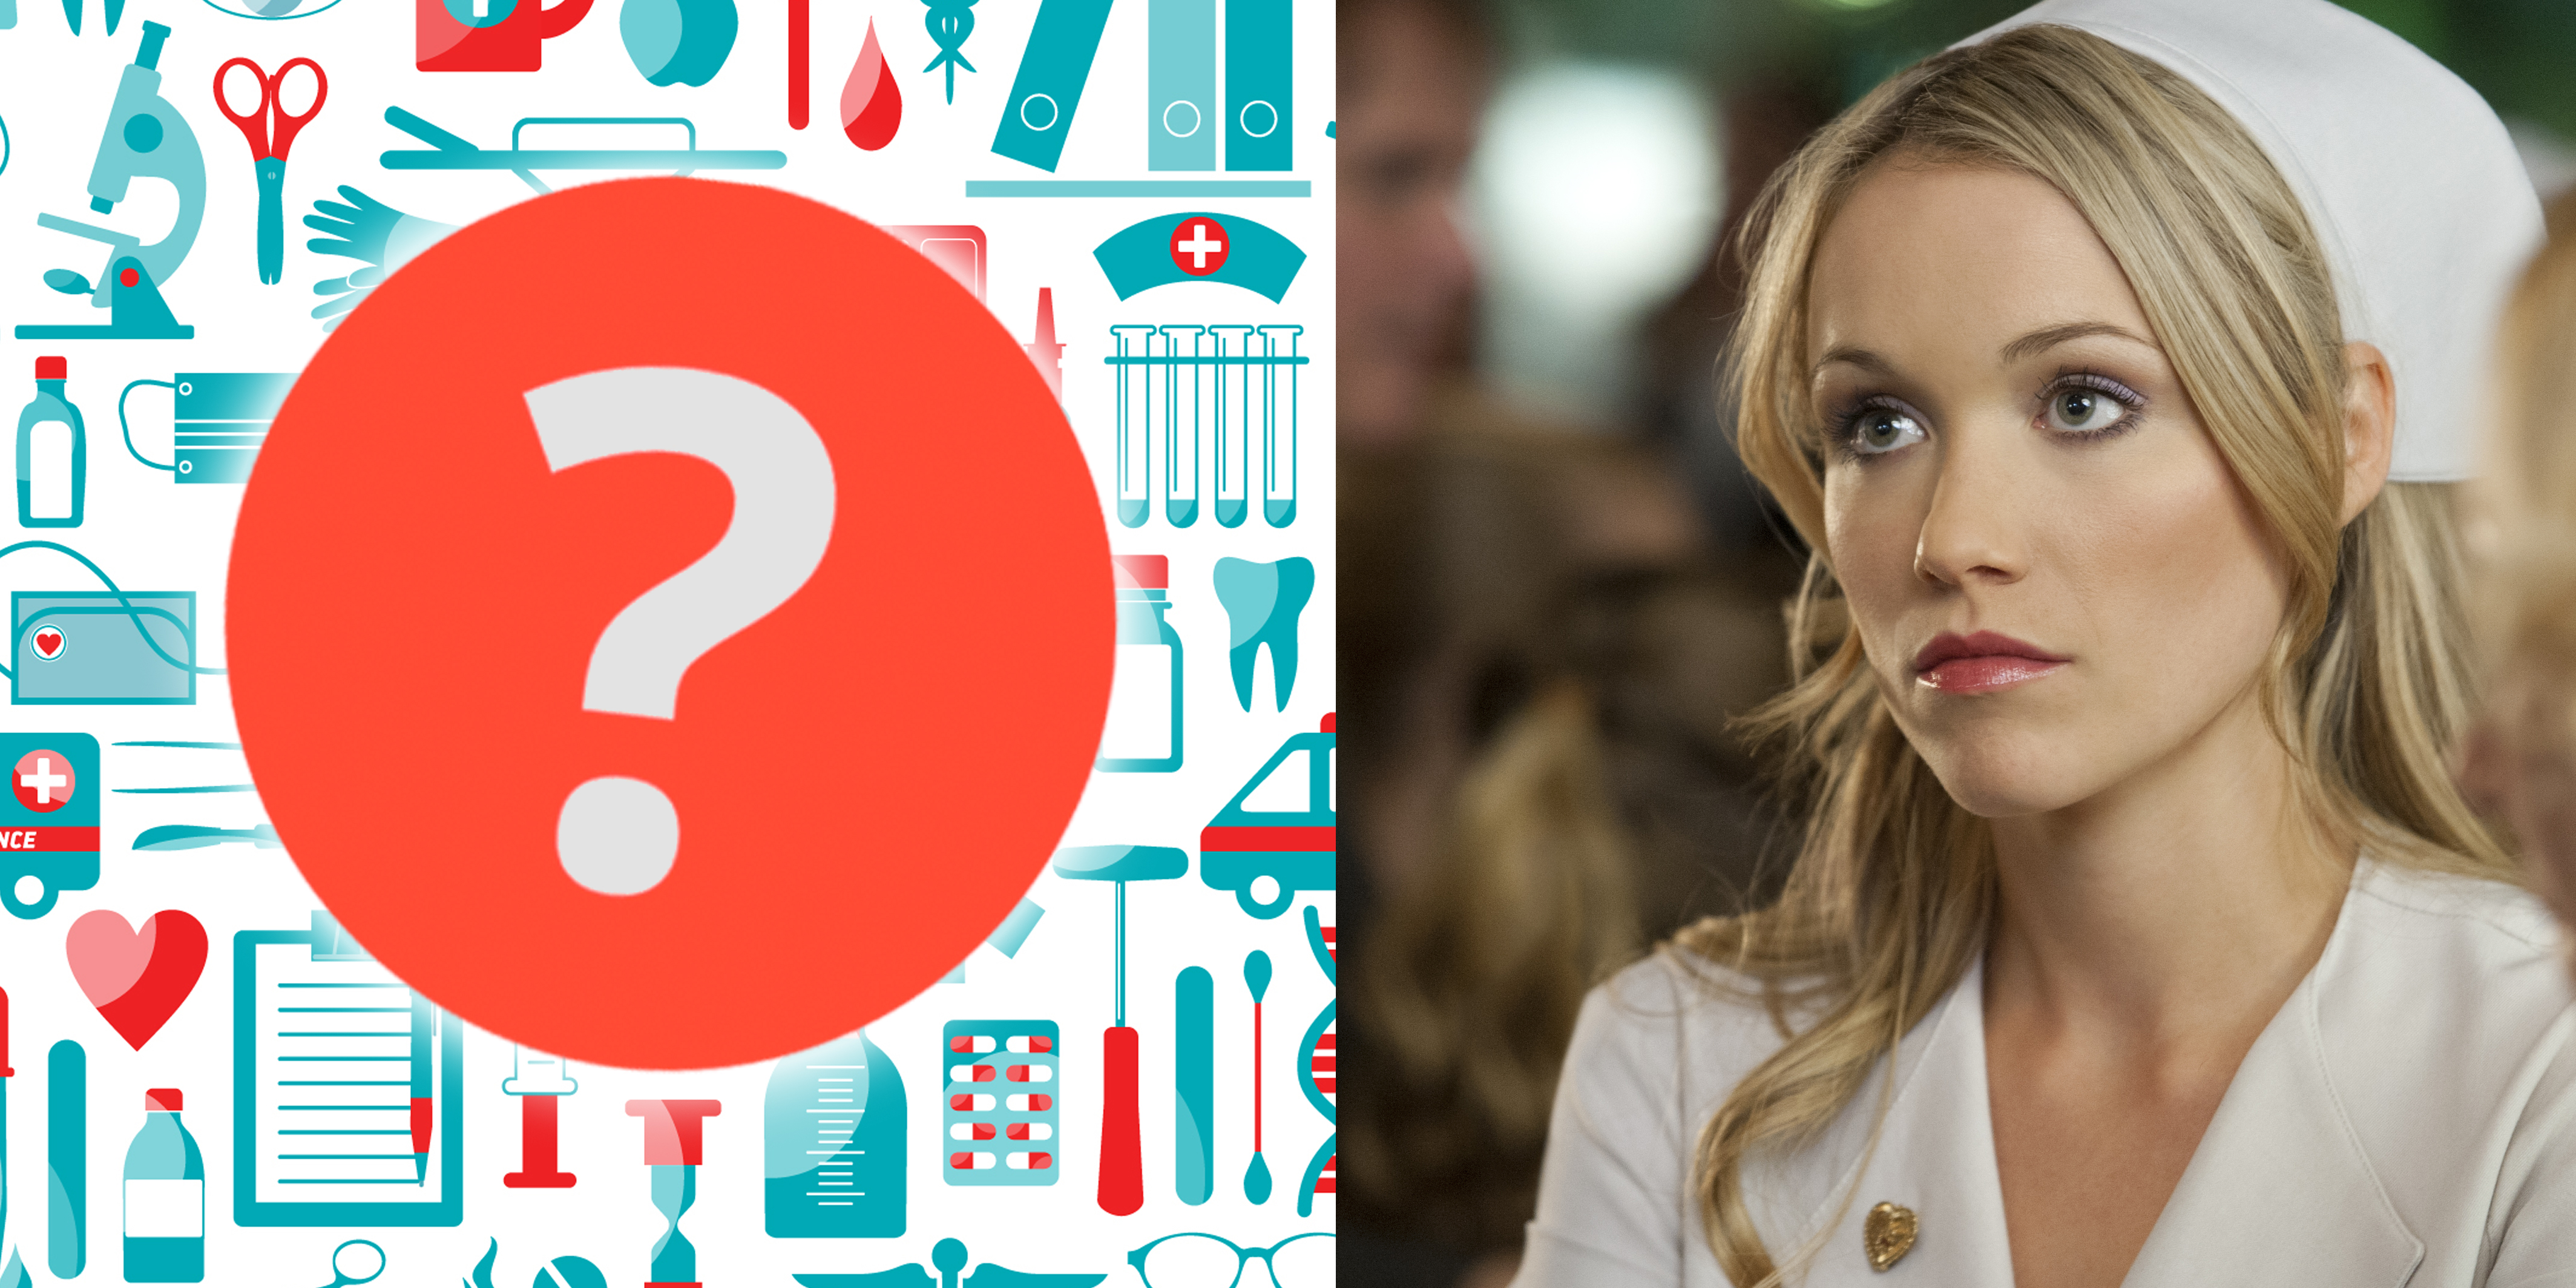 Quiz-Can-You-Answer-22-Basic-Health-Questions-Every-Human-Should-Know